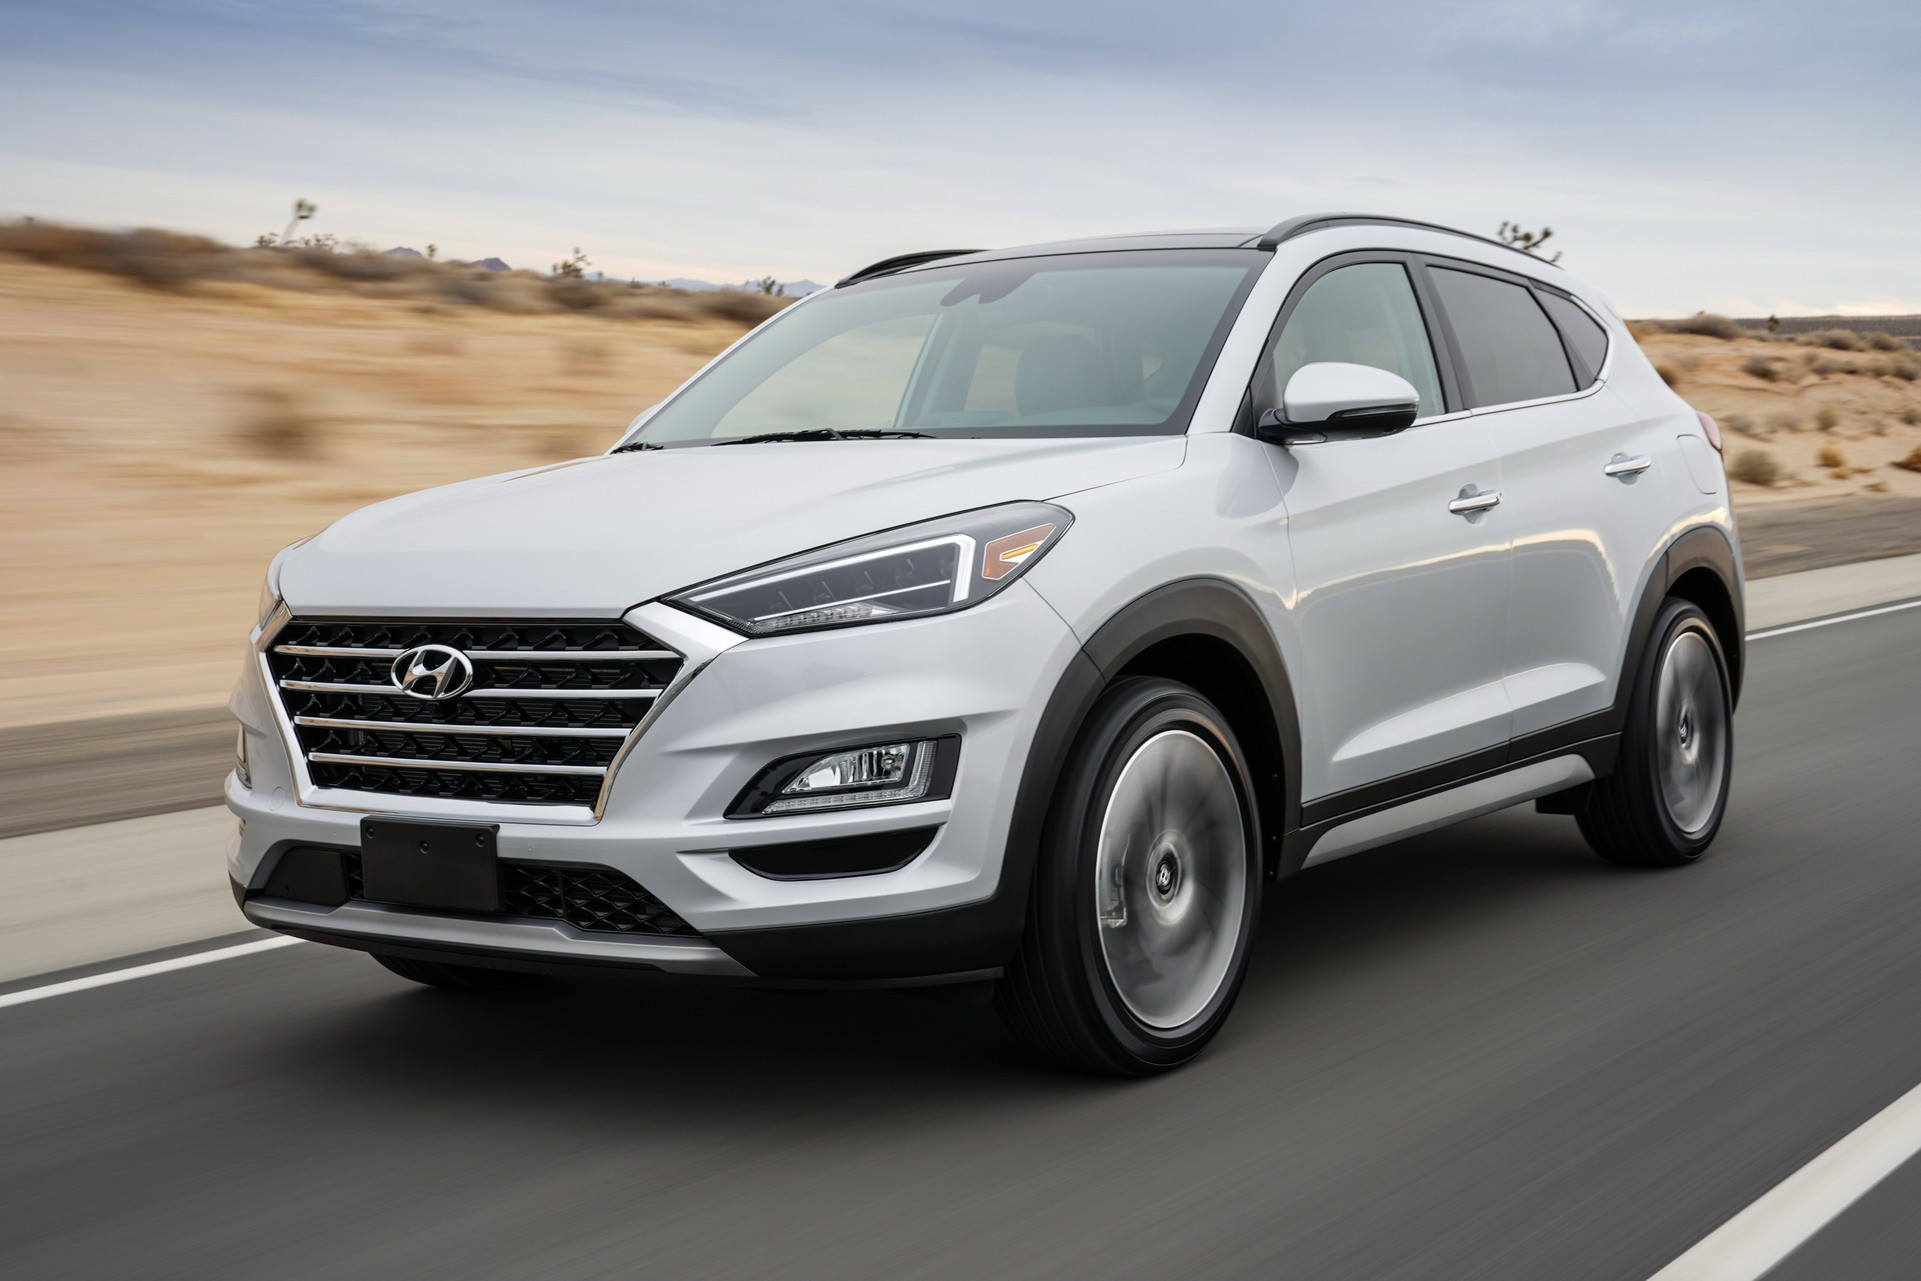 Auto bild hat die infos. 2019 Hyundai Tucson Debuts With Refreshed Face, Drops 1.6